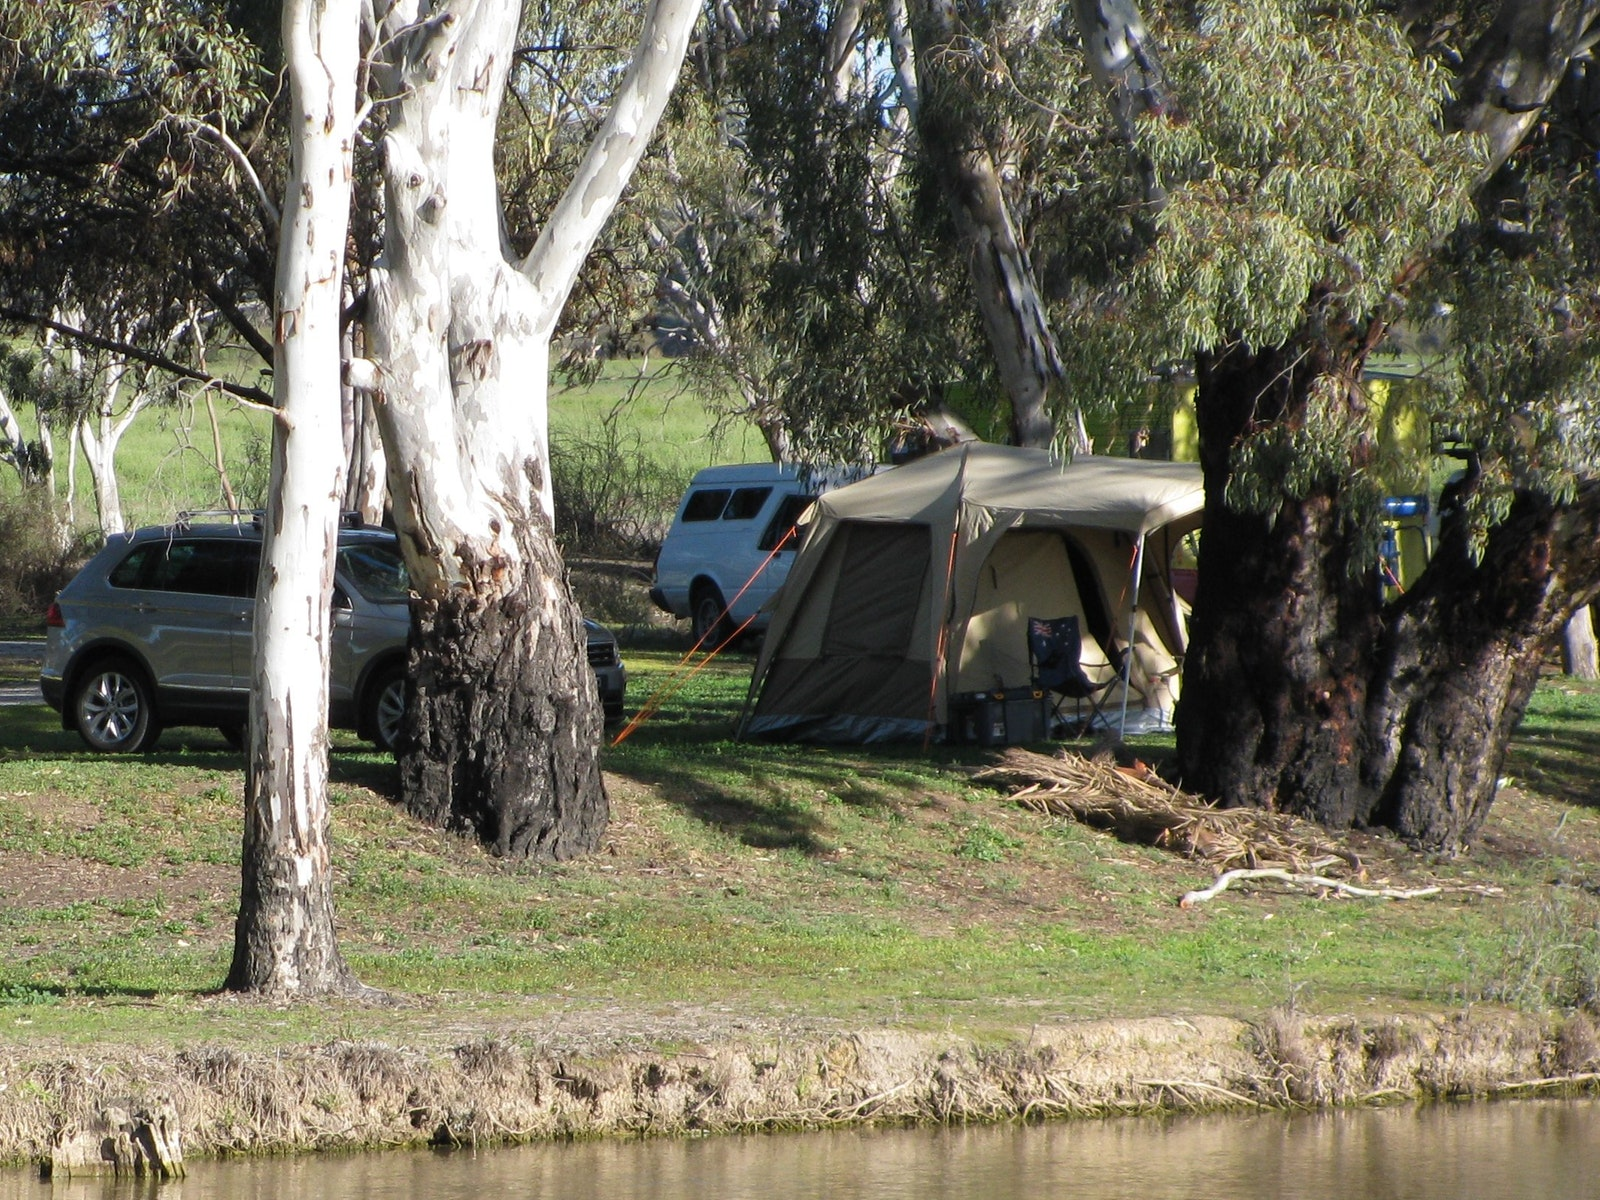 Camping on the rivers edge